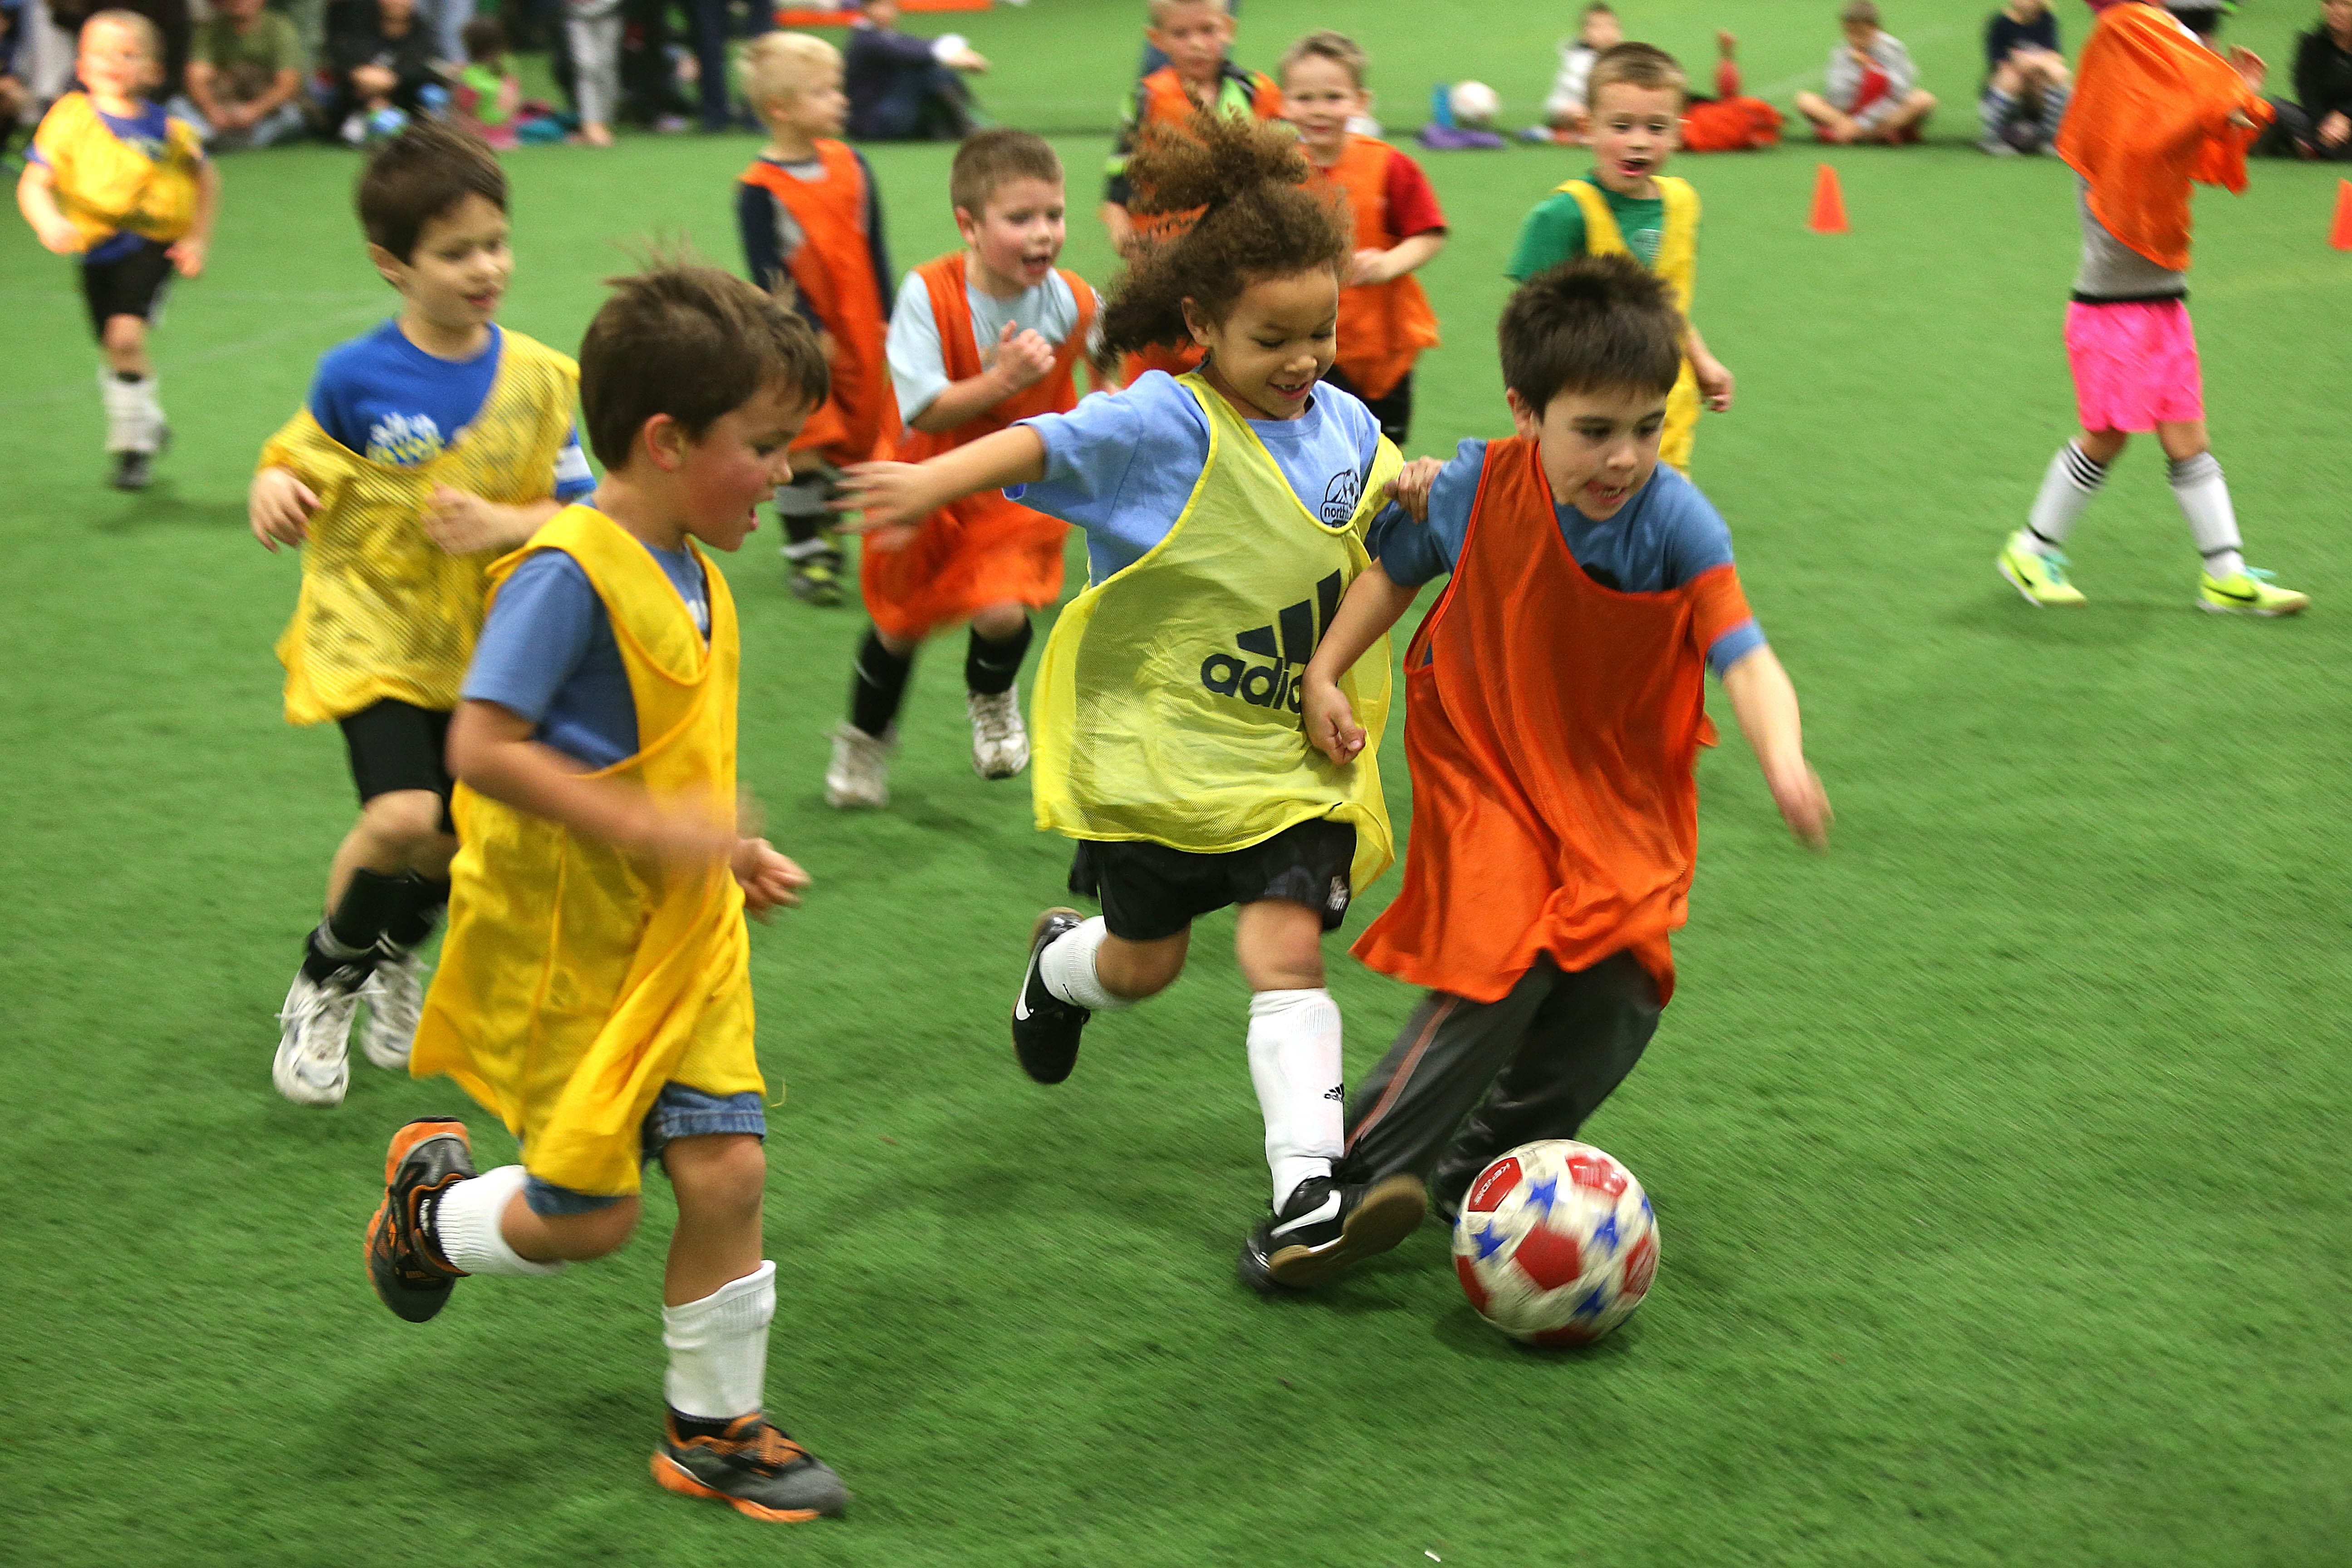 Above, U9 soccer kids practice in North Tonawanda's Sportsplex. Locker rooms have been renovated, parking lot repaved, tennis courts refurbished, the soccer field fixed and a snack bar reopened.